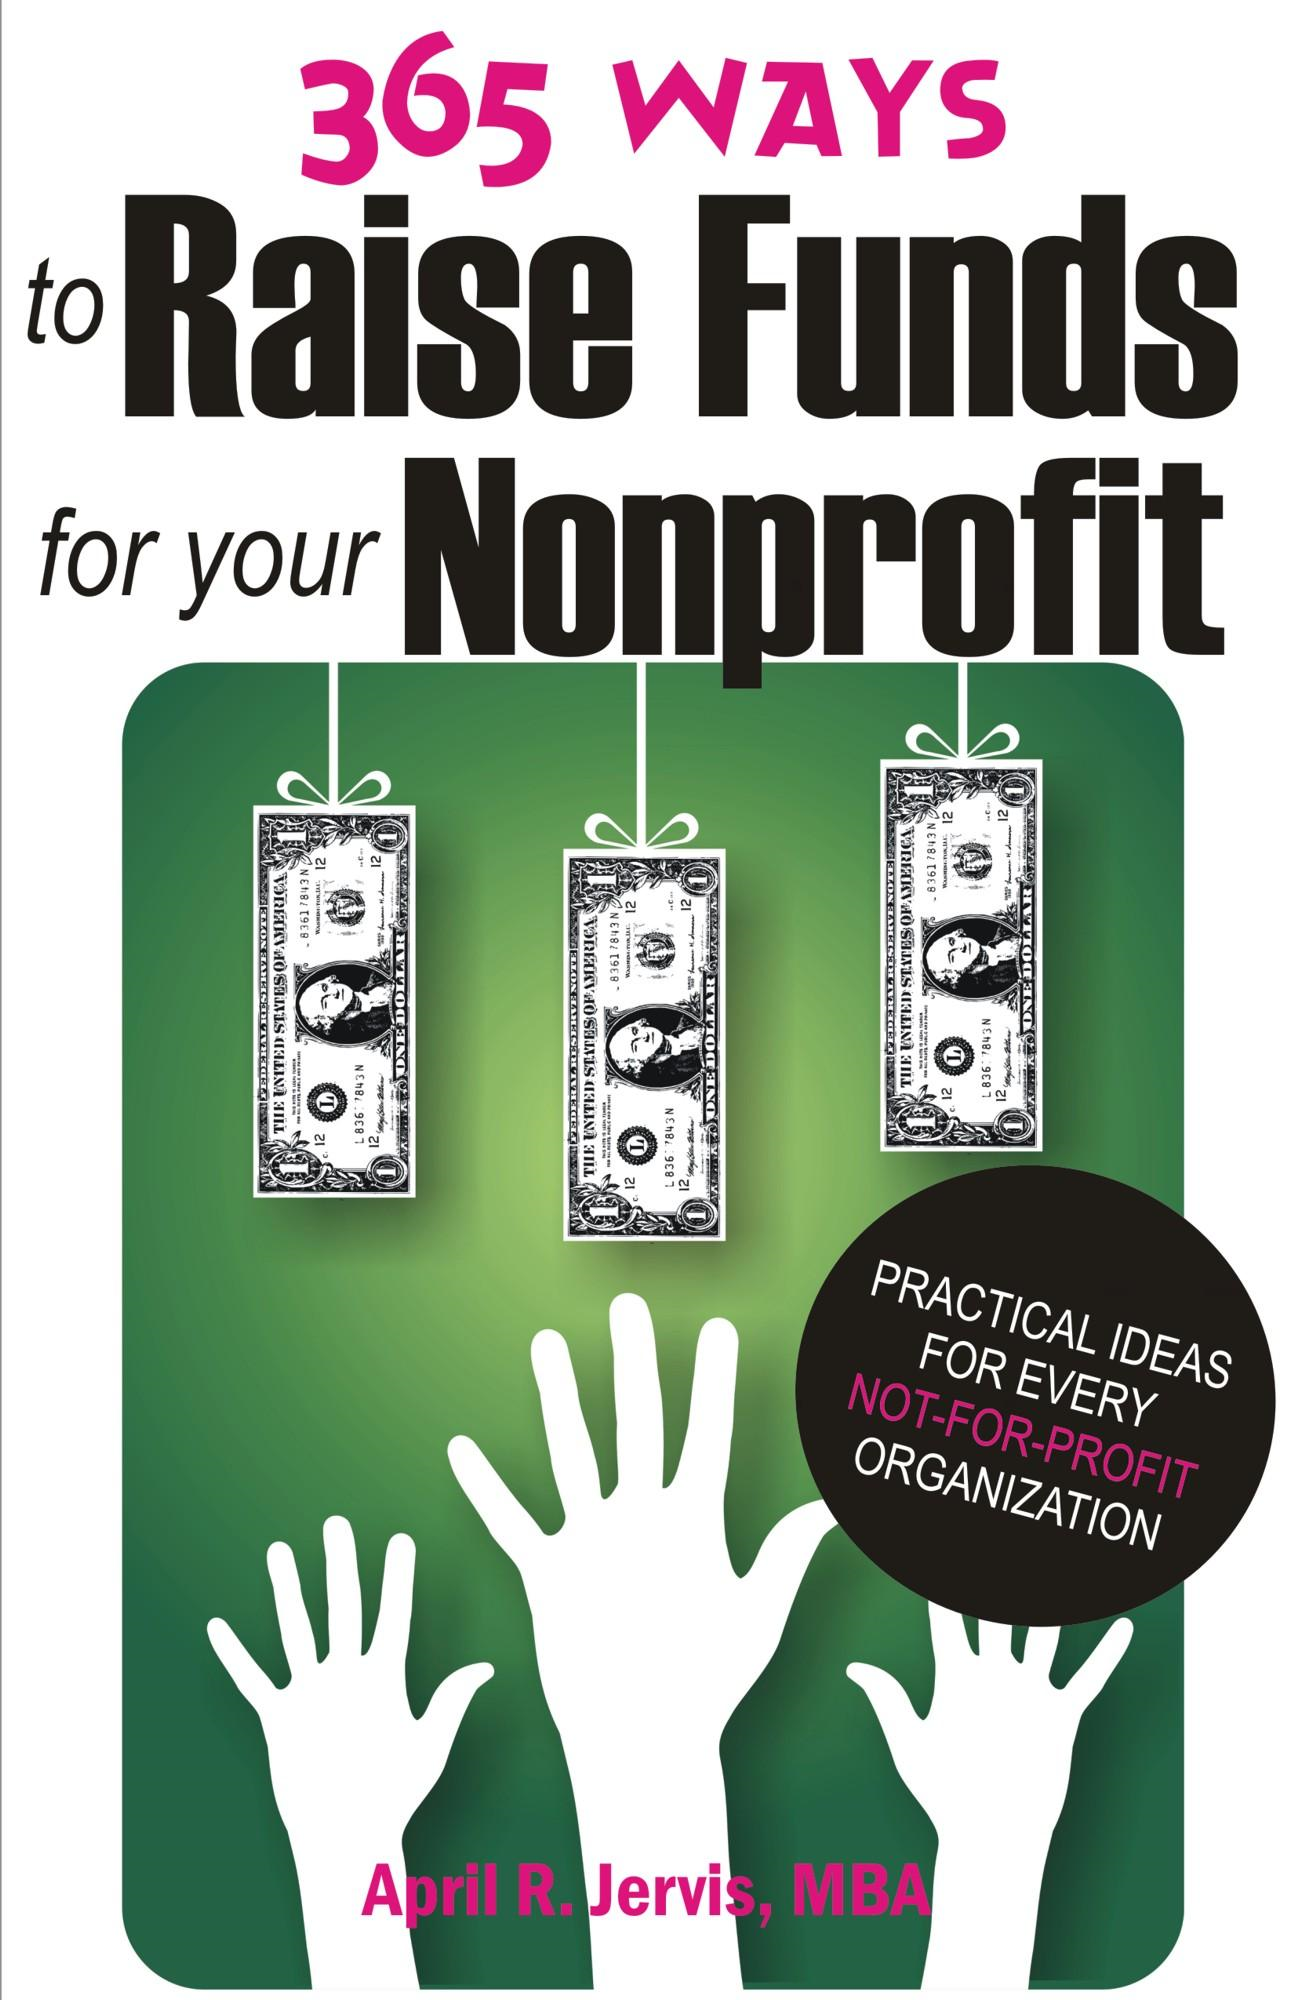 365 Ways to Raise Funds for Your Nonprofit: Practical Ideas for Every Not-For-Profit Organization